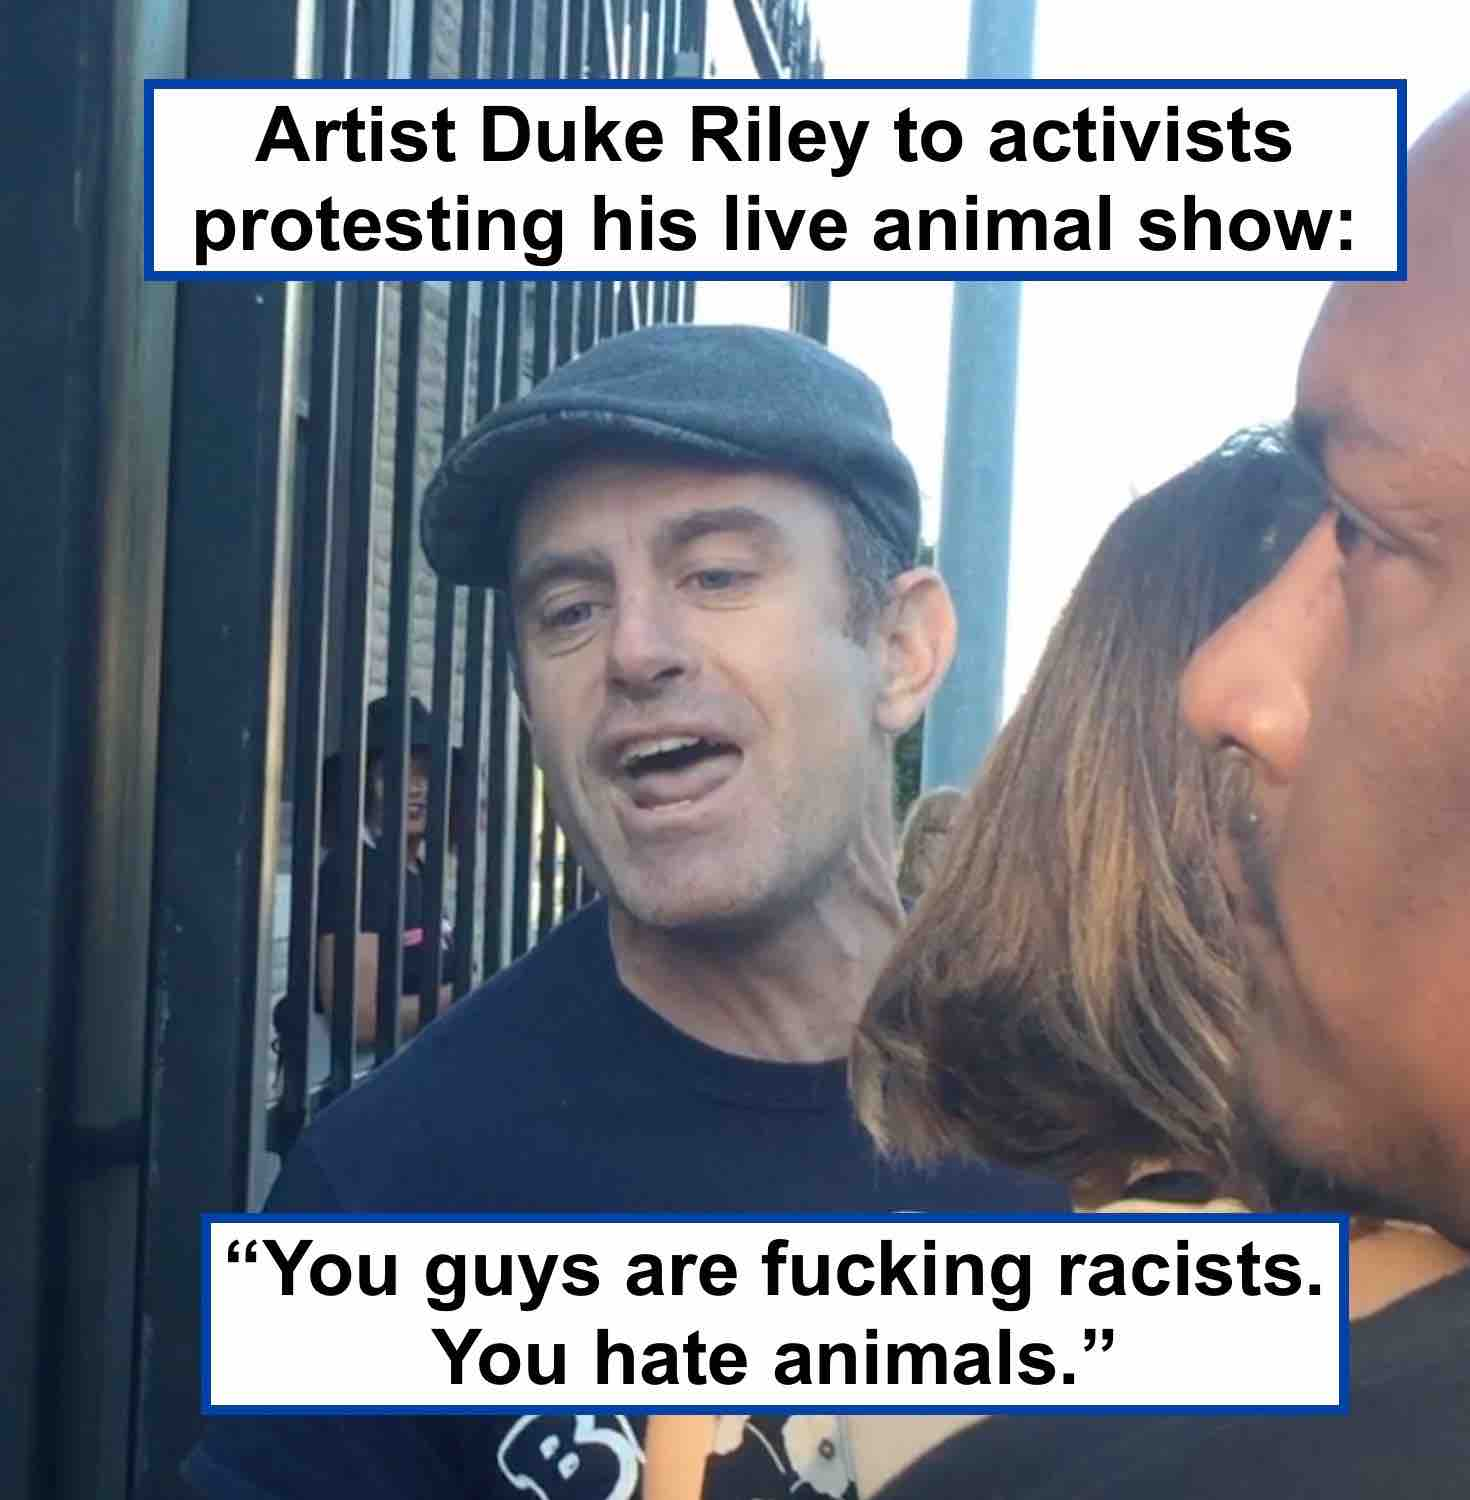 Artist Duke Riley Verbally Assaulted activists protesting his pigeon show.